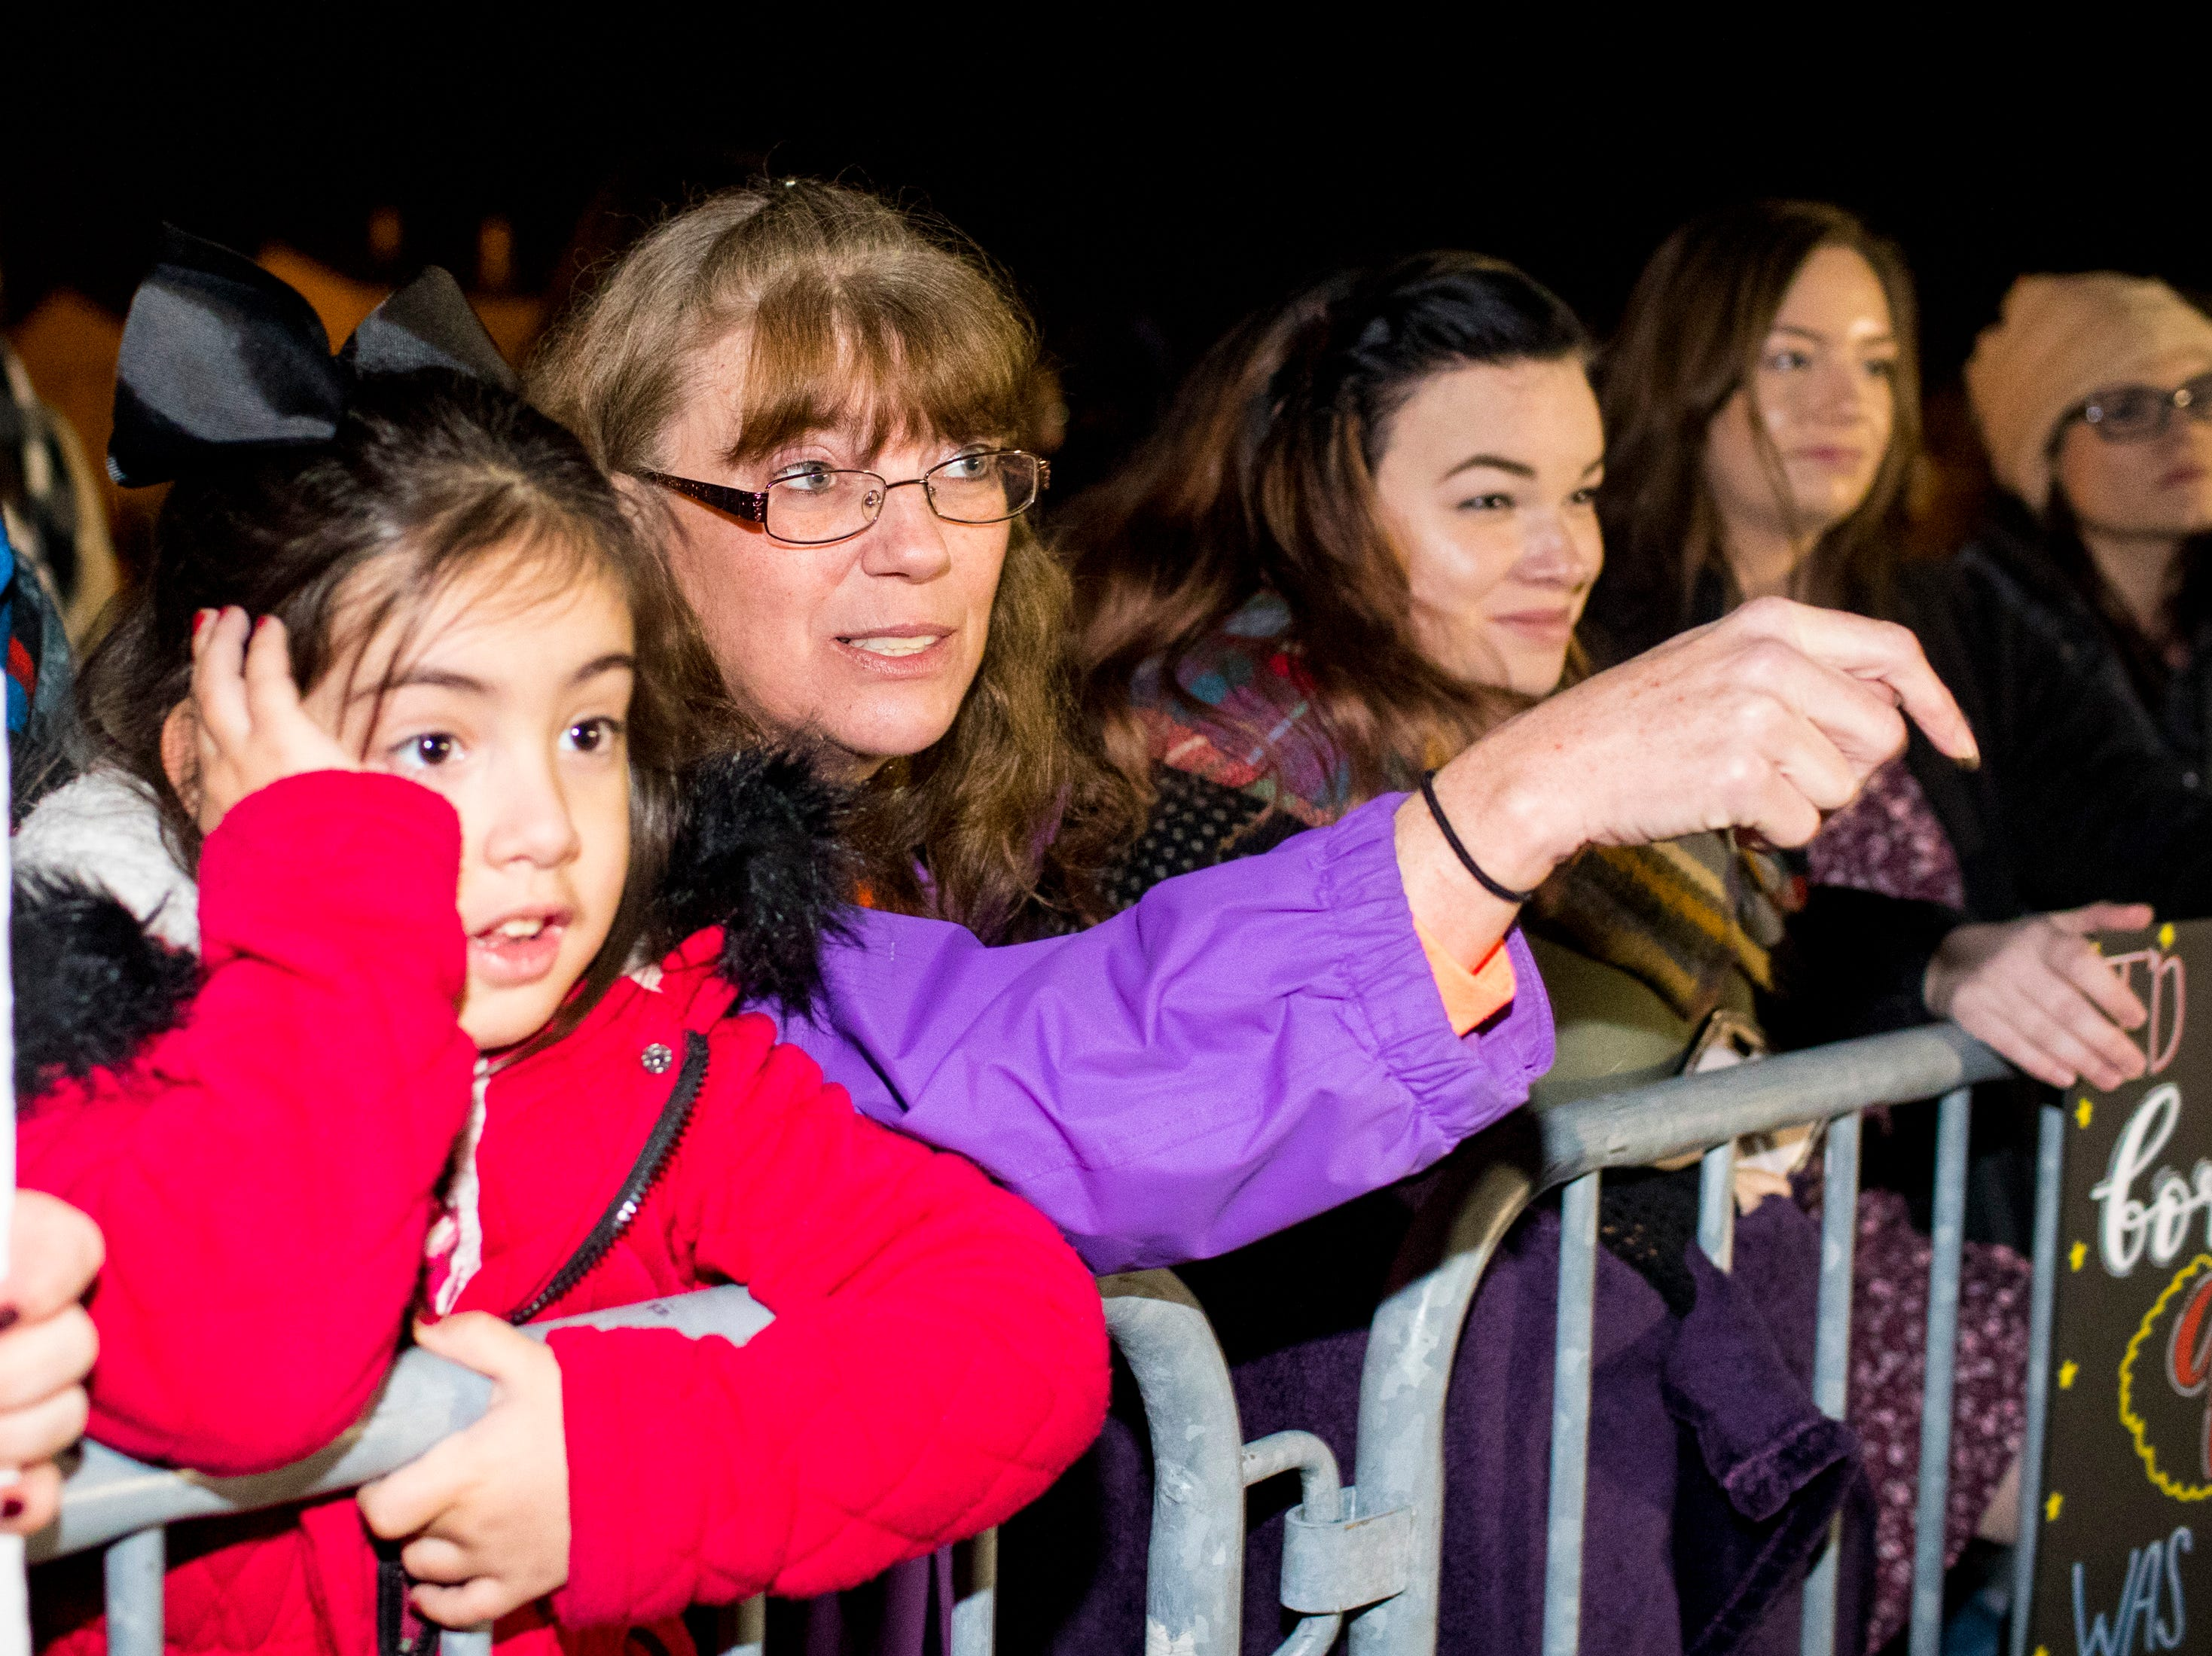 Jennifer King points her granddaughter, Sophia Blais, 5, towards the plane carrying Blais' uncle, Specialist Jordan Rogers, during the welcome home ceremony for the 2nd Battalion, 44th Air Defense Artillery Regiment and 101st Airborne Division at Fort Campbell in the early hours of Monday, Nov. 19, 2018. The soldiers were returning from a 9-month deployment in Afghanistan.